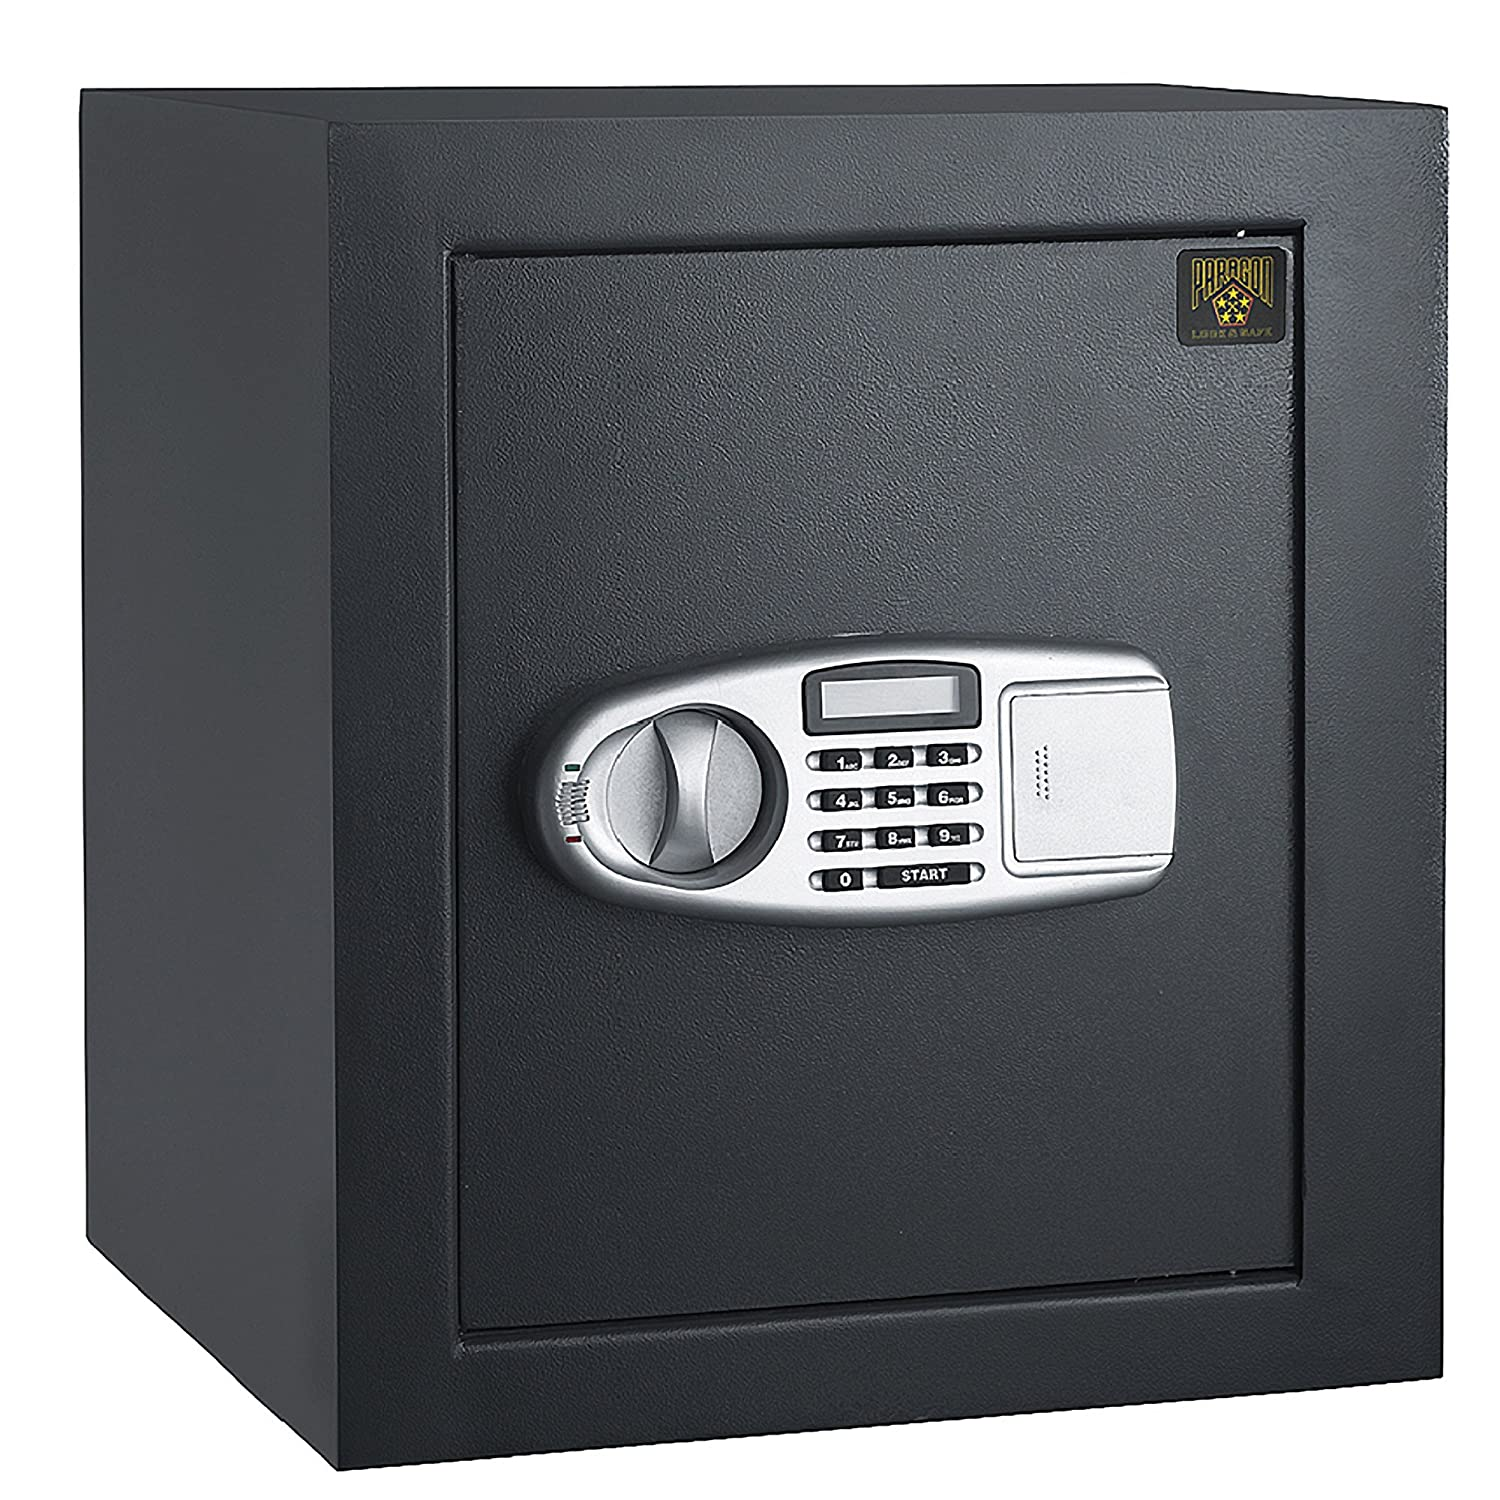 Image of 7800 Paragon Lock & Safe Fire Proof Electronic Digital Safe Home Security Heavy Duty Home Improvements